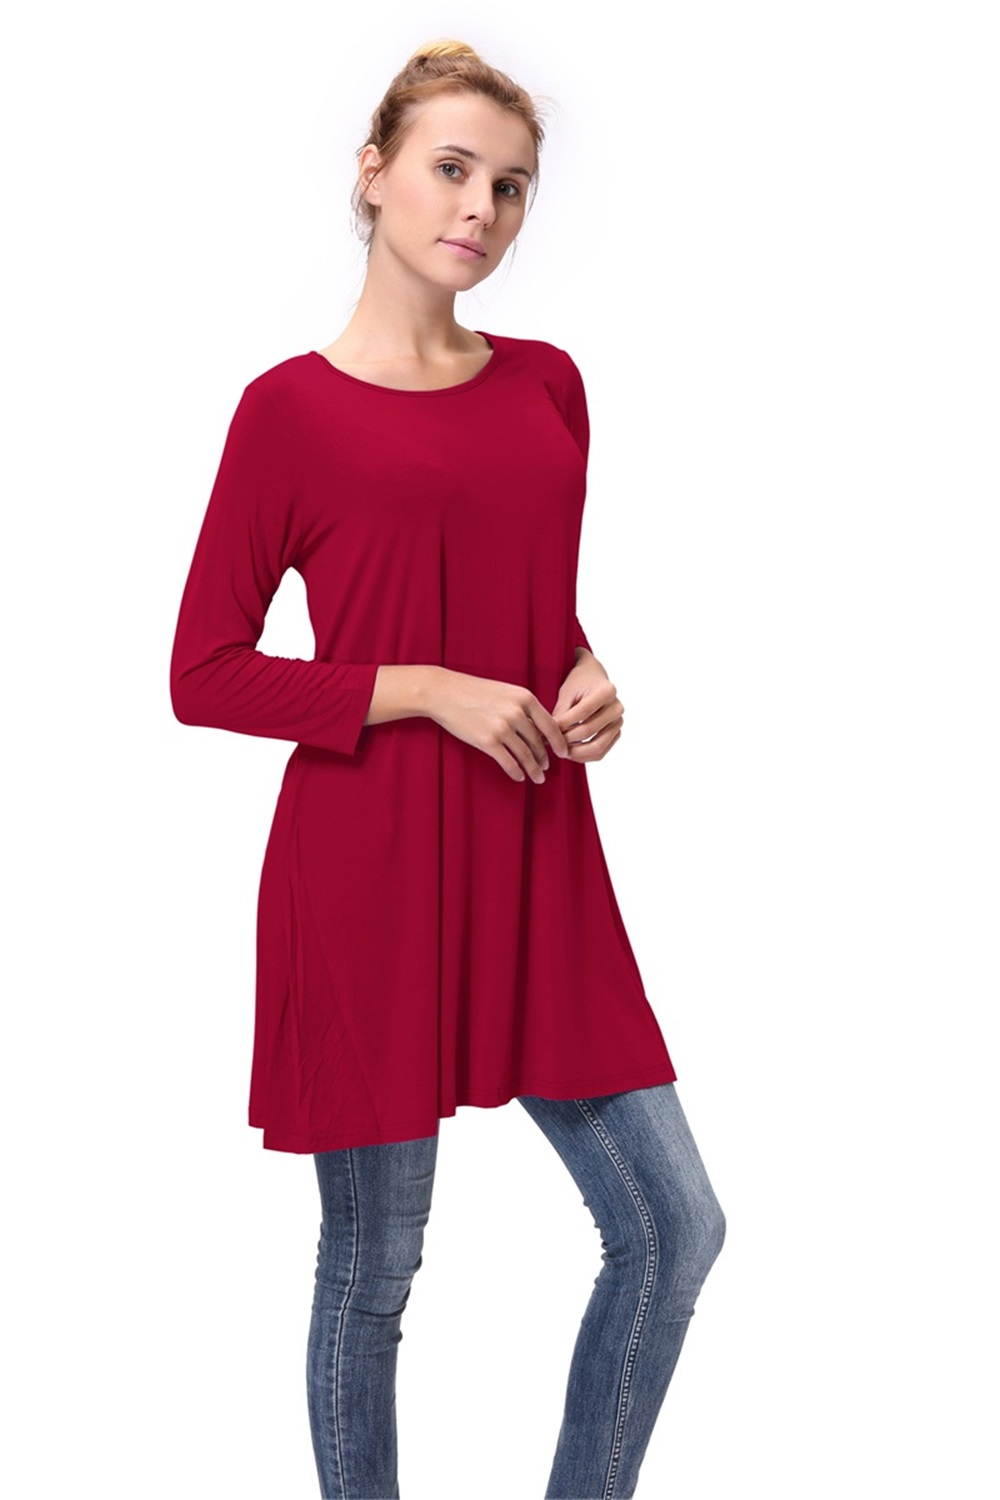 Women-Casual-Round-Neck-3-4-Long-Sleeve-Trapeze-Tunic-Top-Lady-Loose-Fit-Dress thumbnail 24